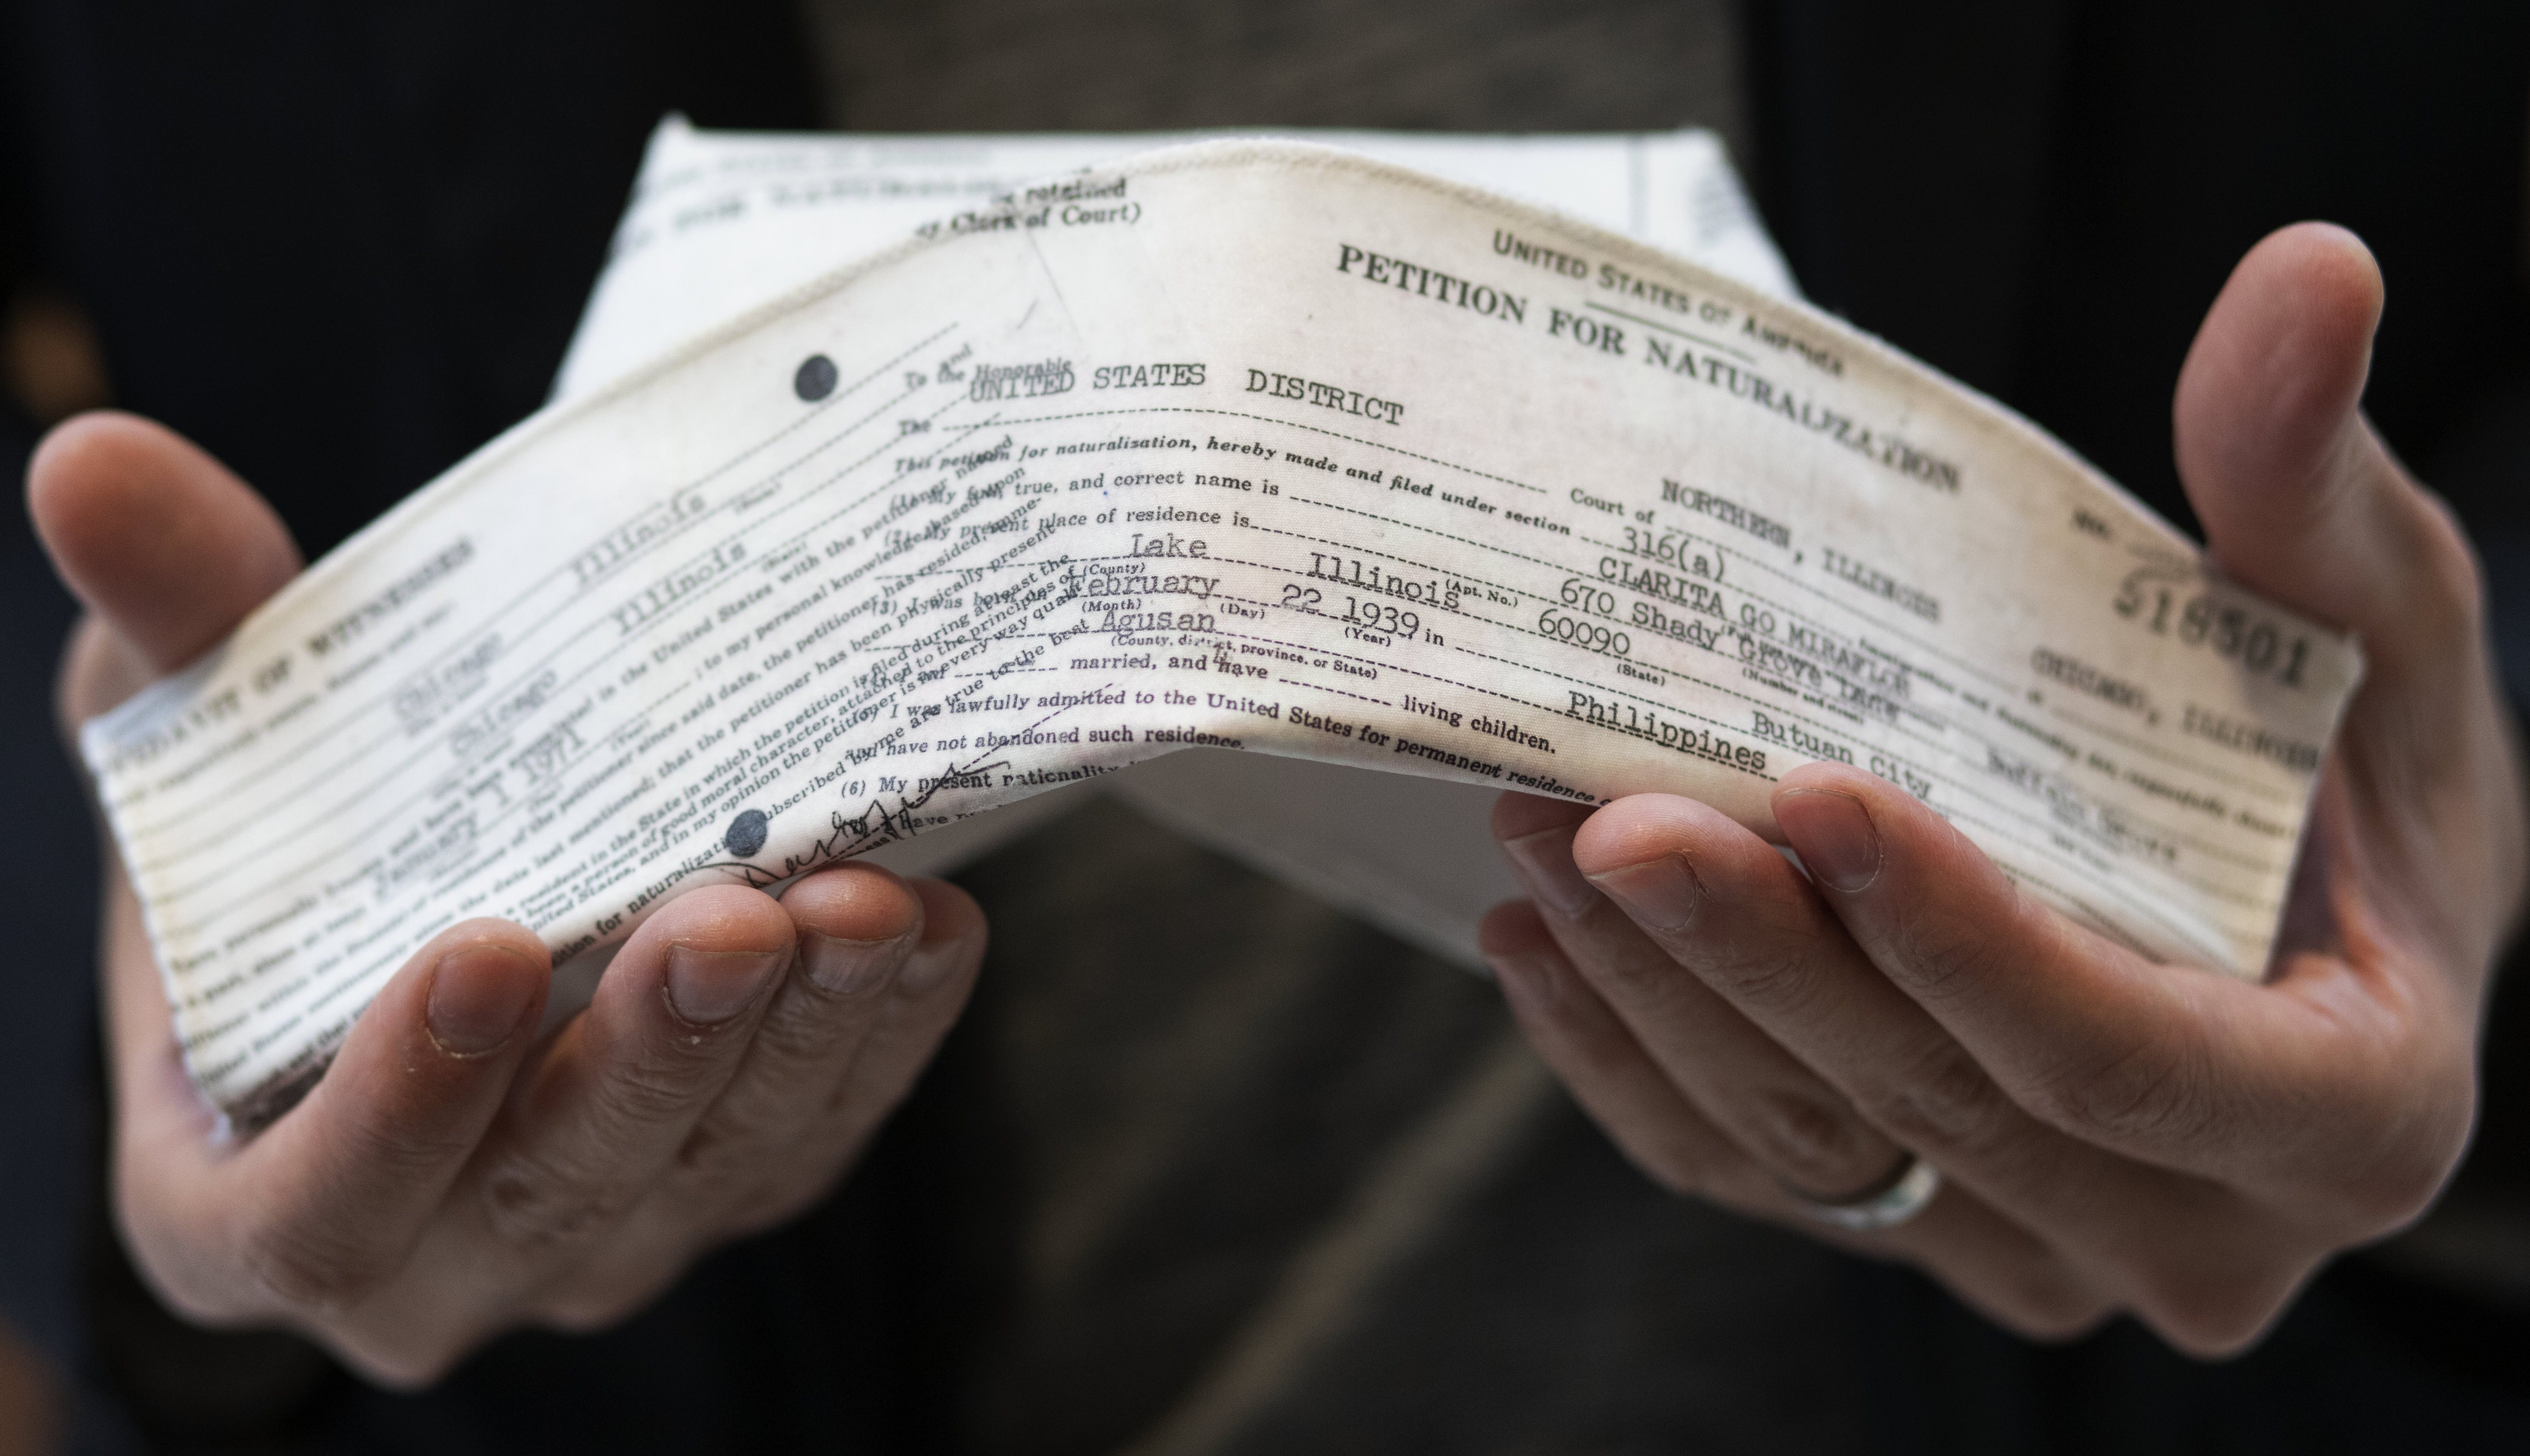 A traditional white nurses' cap is imprinted with the type-written text of an immigration and naturalization form. It it held in a man's hands in this close-up image.